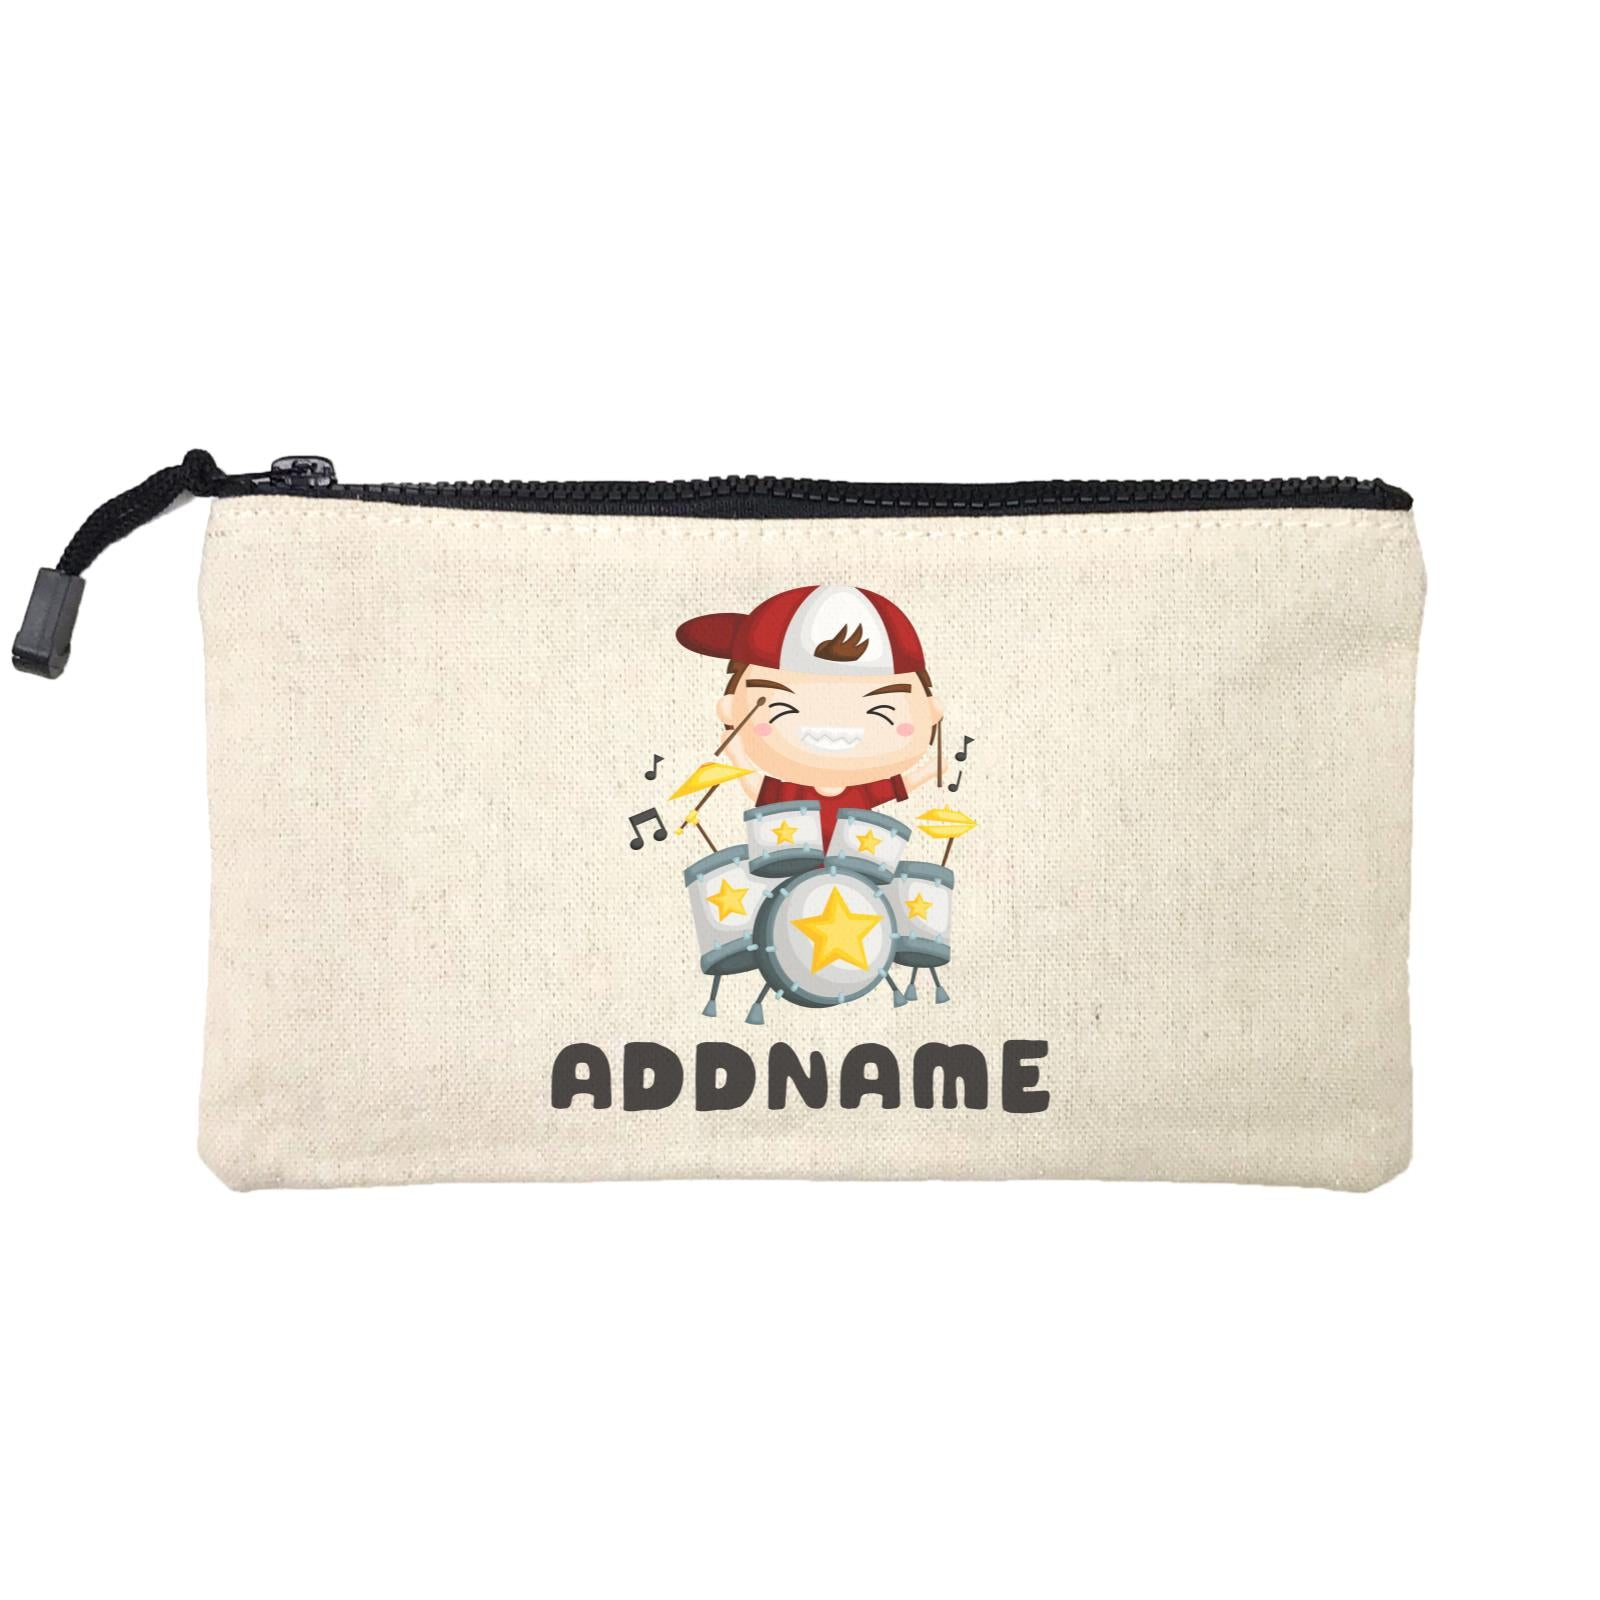 Birthday Music Band Boy Playing Drums Addname Mini Accessories Stationery Pouch